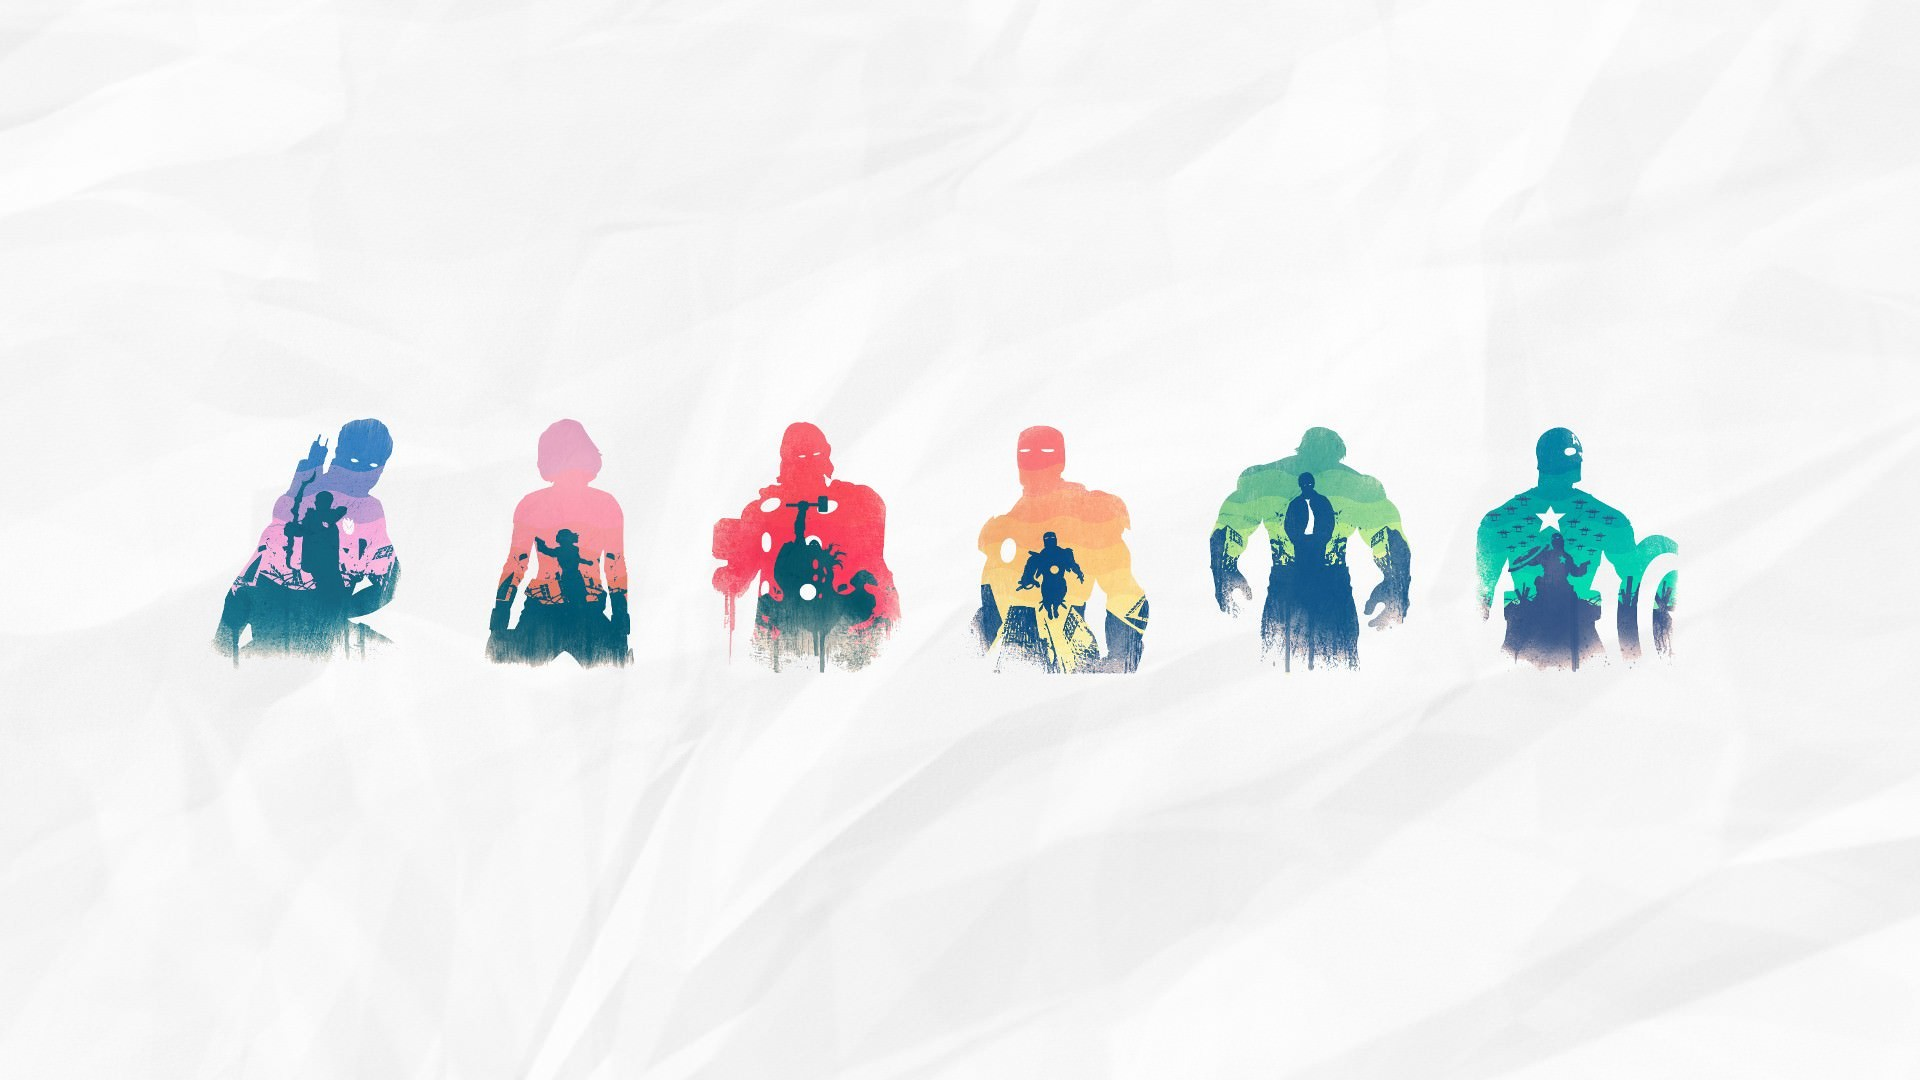 The Avengers Illustrated Wallpaper